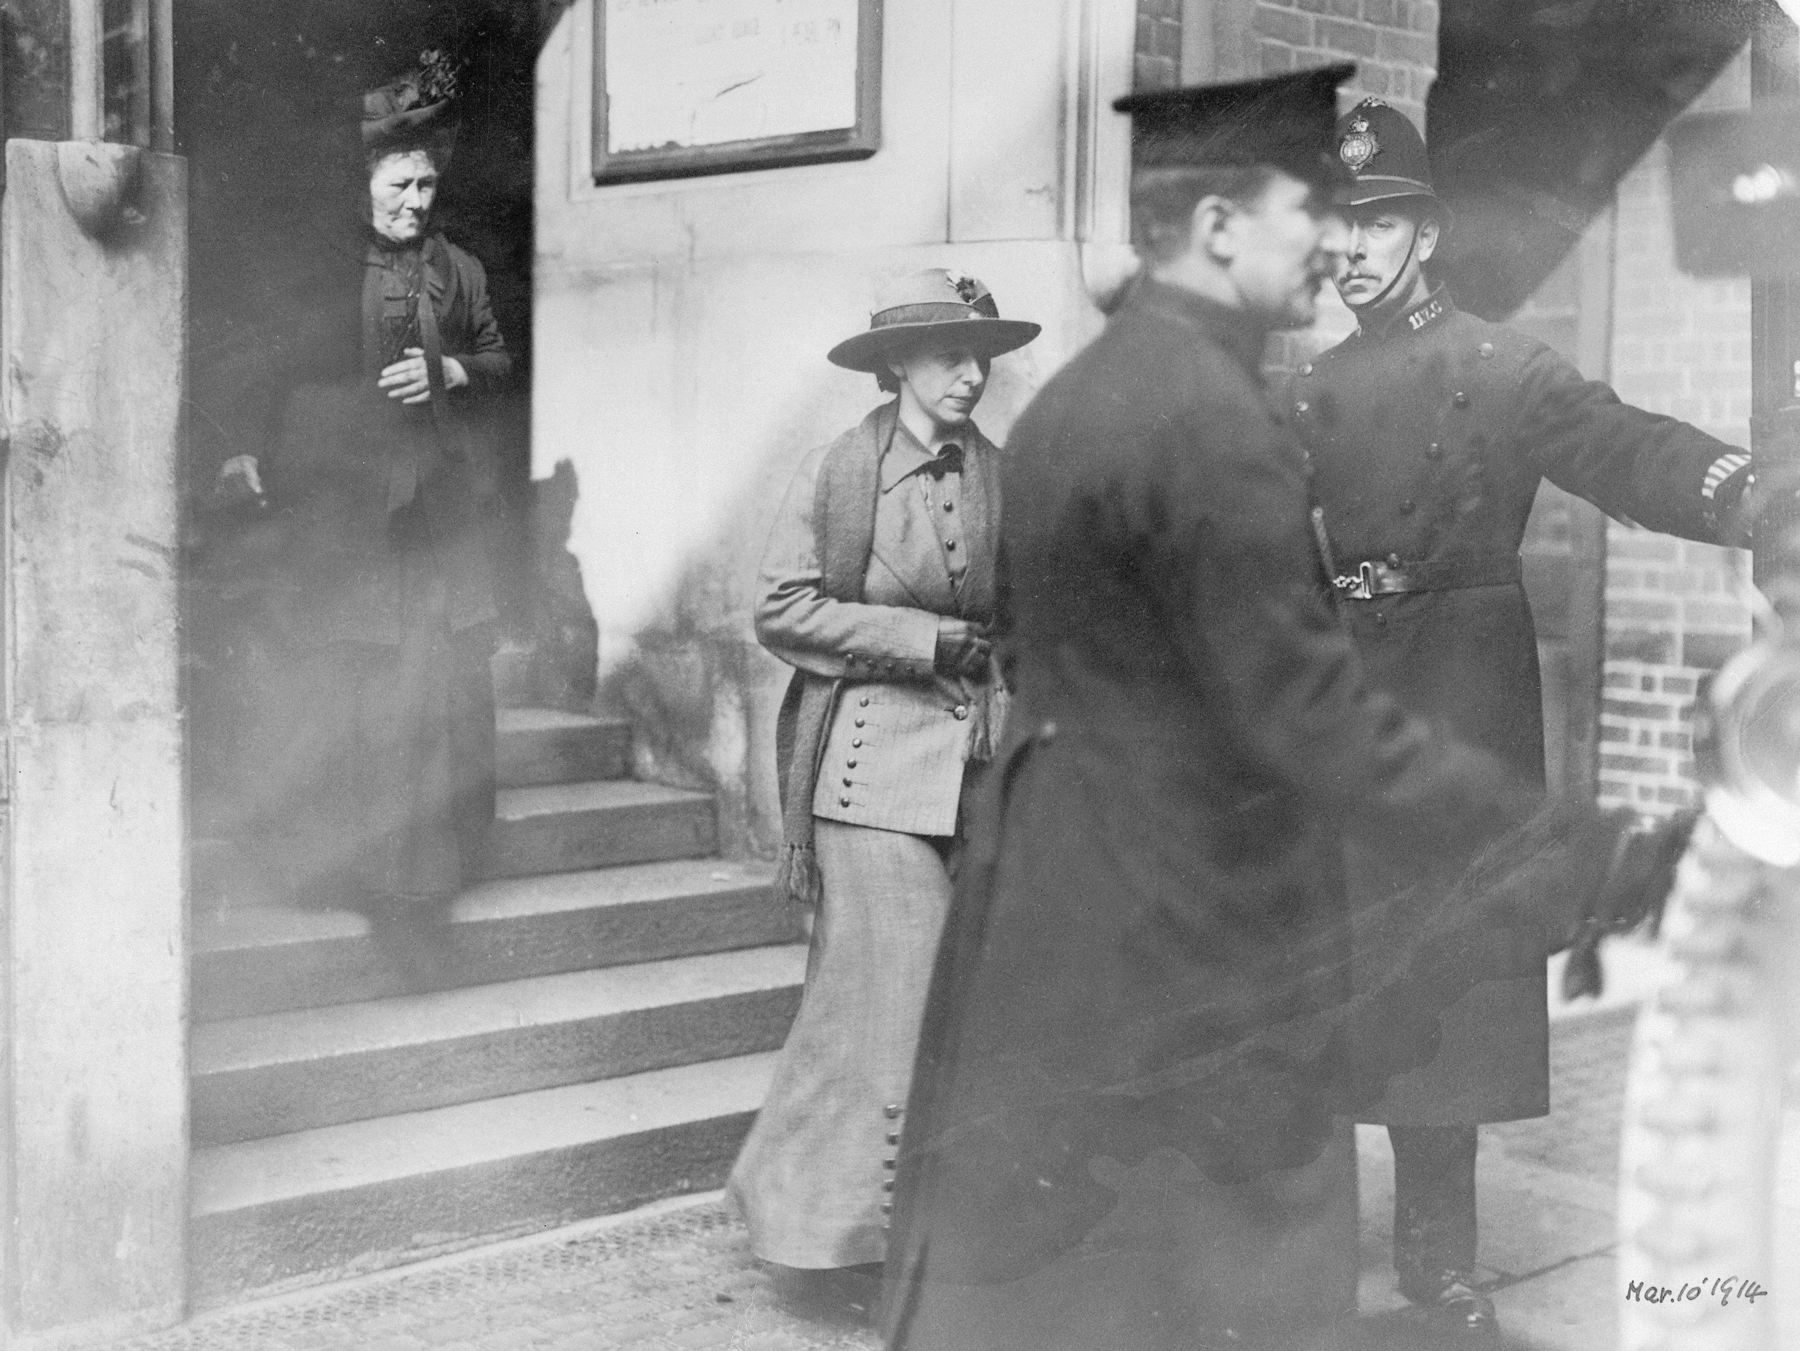 'Slasher' Mary Richardson leaving court, 1914. Richardson (centre), had attacked the Rokeby Venus at the National Gallery in London on 4th March 1914, slashing it seven times with a meat cleaver. This was in protest at the government's failure to give women the vote. Attacks on works of art prompted the closure of many of the country's art galleries and museums to women, and sometimes to the public completely. At places of historical interest the rule of 'No muffs, wrist-bags, or sticks' was widespread. Later, in May 1914, the Royal Academy and the Tate Gallery closed to the public. The British Museum was more flexible, opening to women accompanied by men who would accept responsibility for them. Unaccompanied women were only allowed in if they had a letter of recommendation from a gentleman who would vouch for their good conduct and take responsibility for their actions. (Photo by Museum of London/Heritage Images/Getty Images)